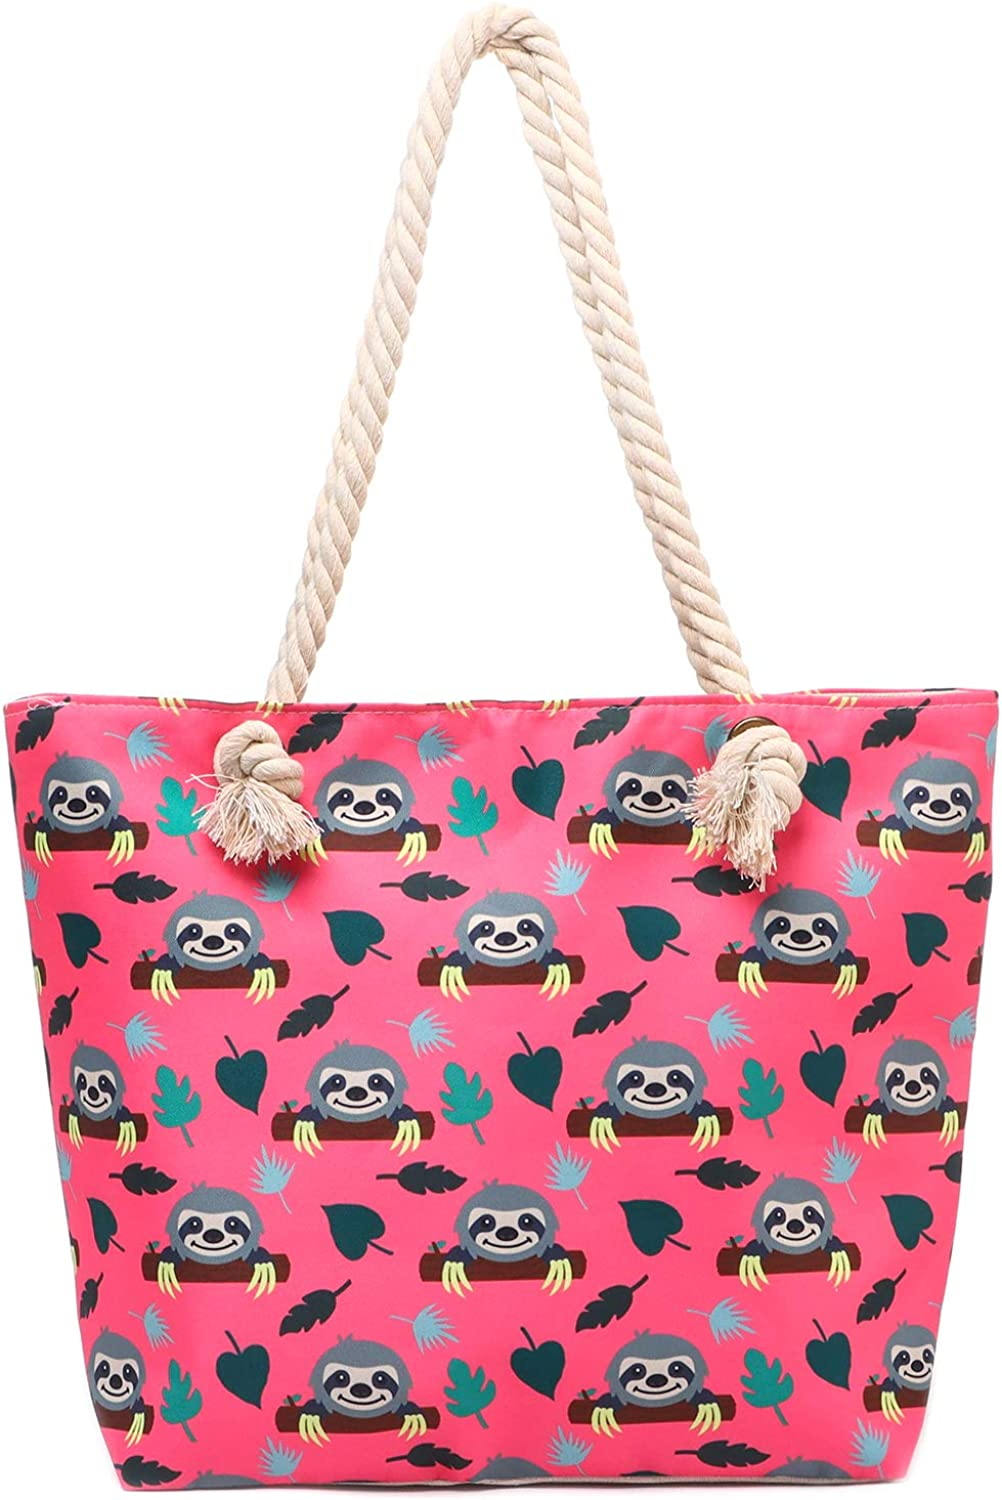 Rave Envy Beach Tote Bags Bag - Travel Tampa Mall Weekender Oakland Mall